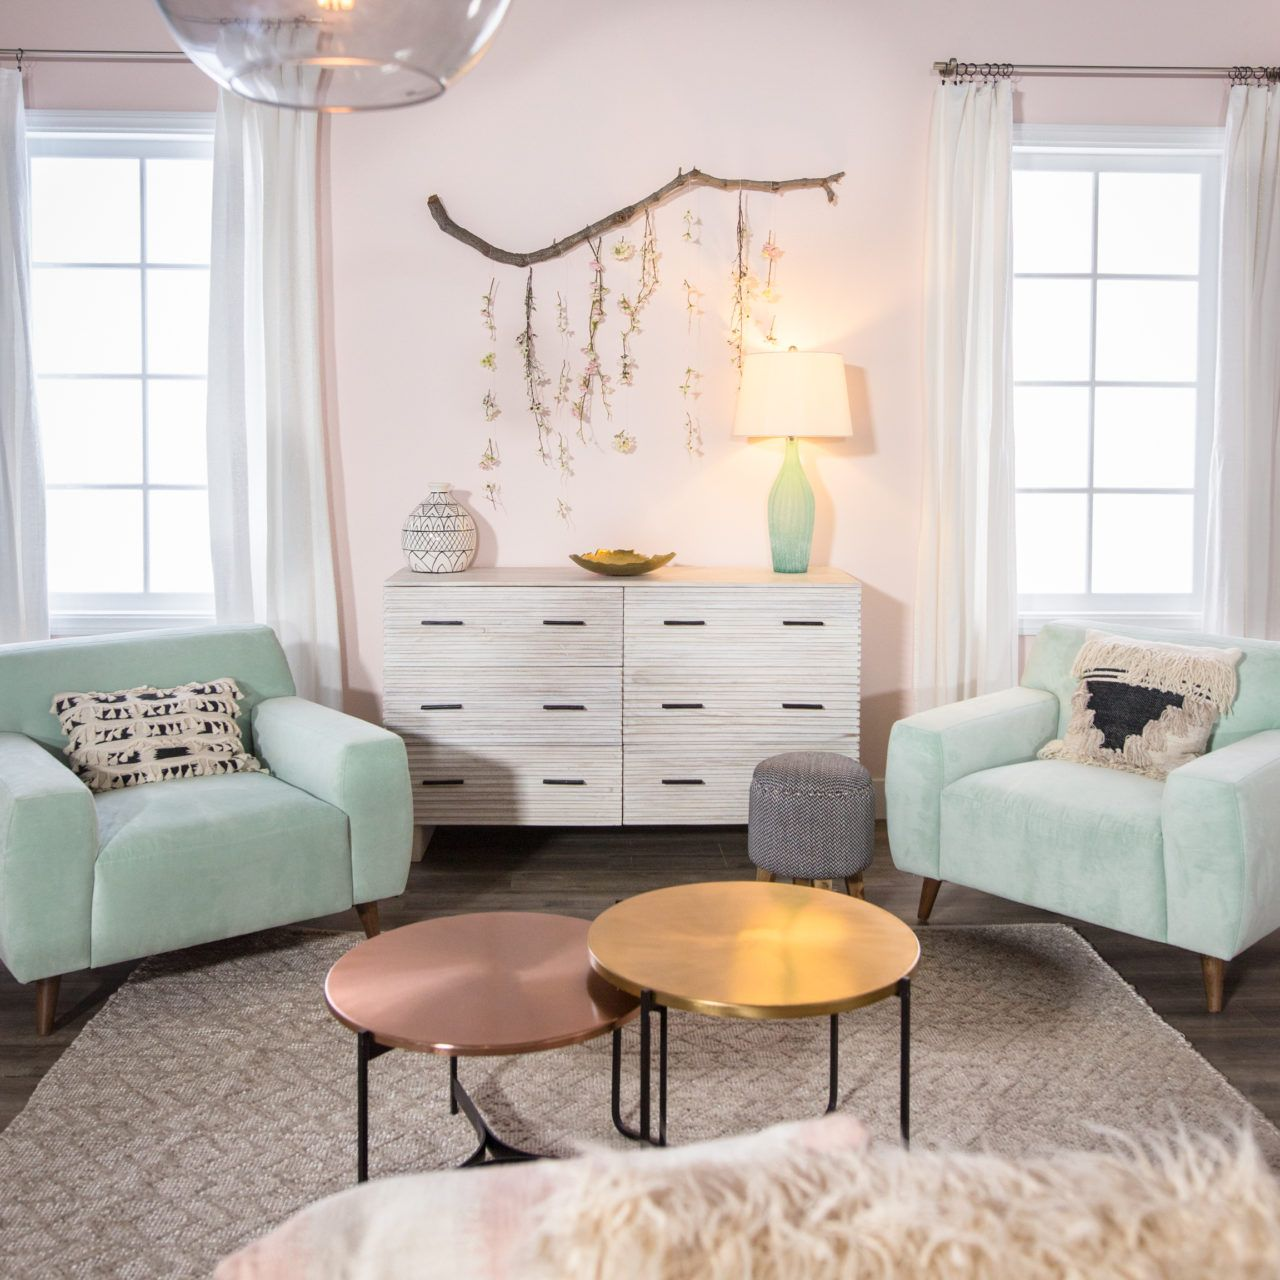 Pale Pink And Mint Pastels For An But Fun Y Living Room Mr Kate Design Vs Makeover Compeion